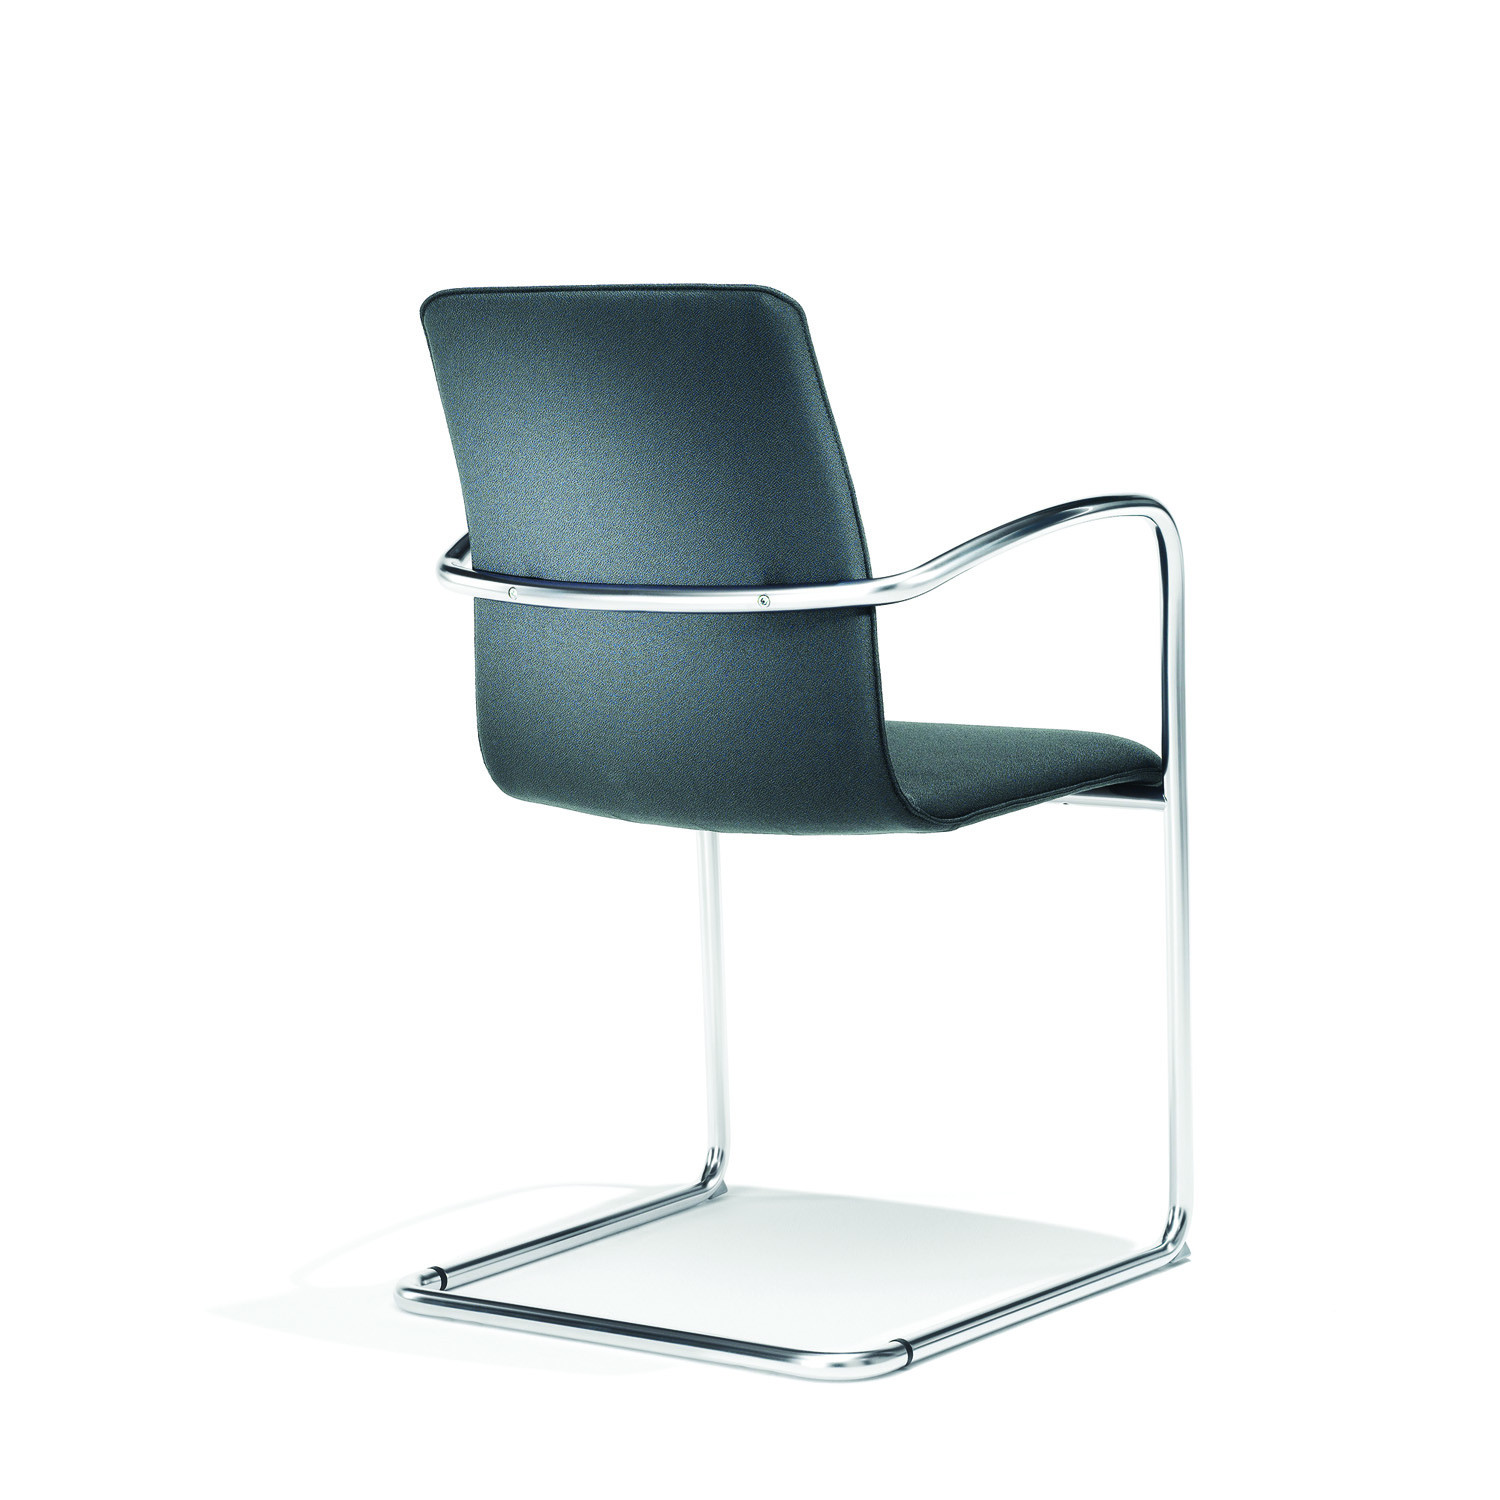 8500 Ona Plaza Chair